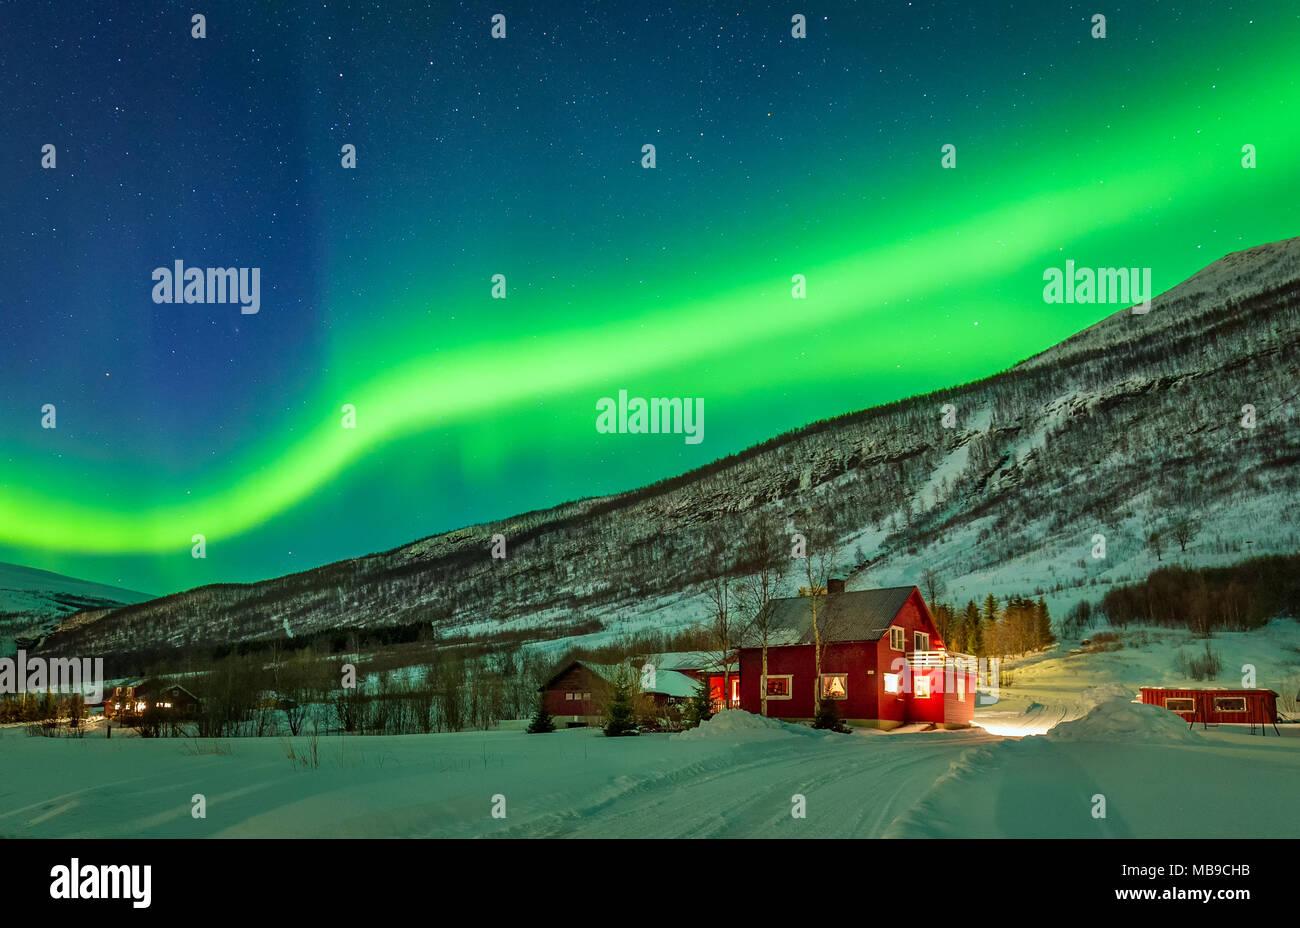 Aurora Borealis over mountain and rural house in distant Northern Norway. Green light of aurora lay over mountains. - Stock Image